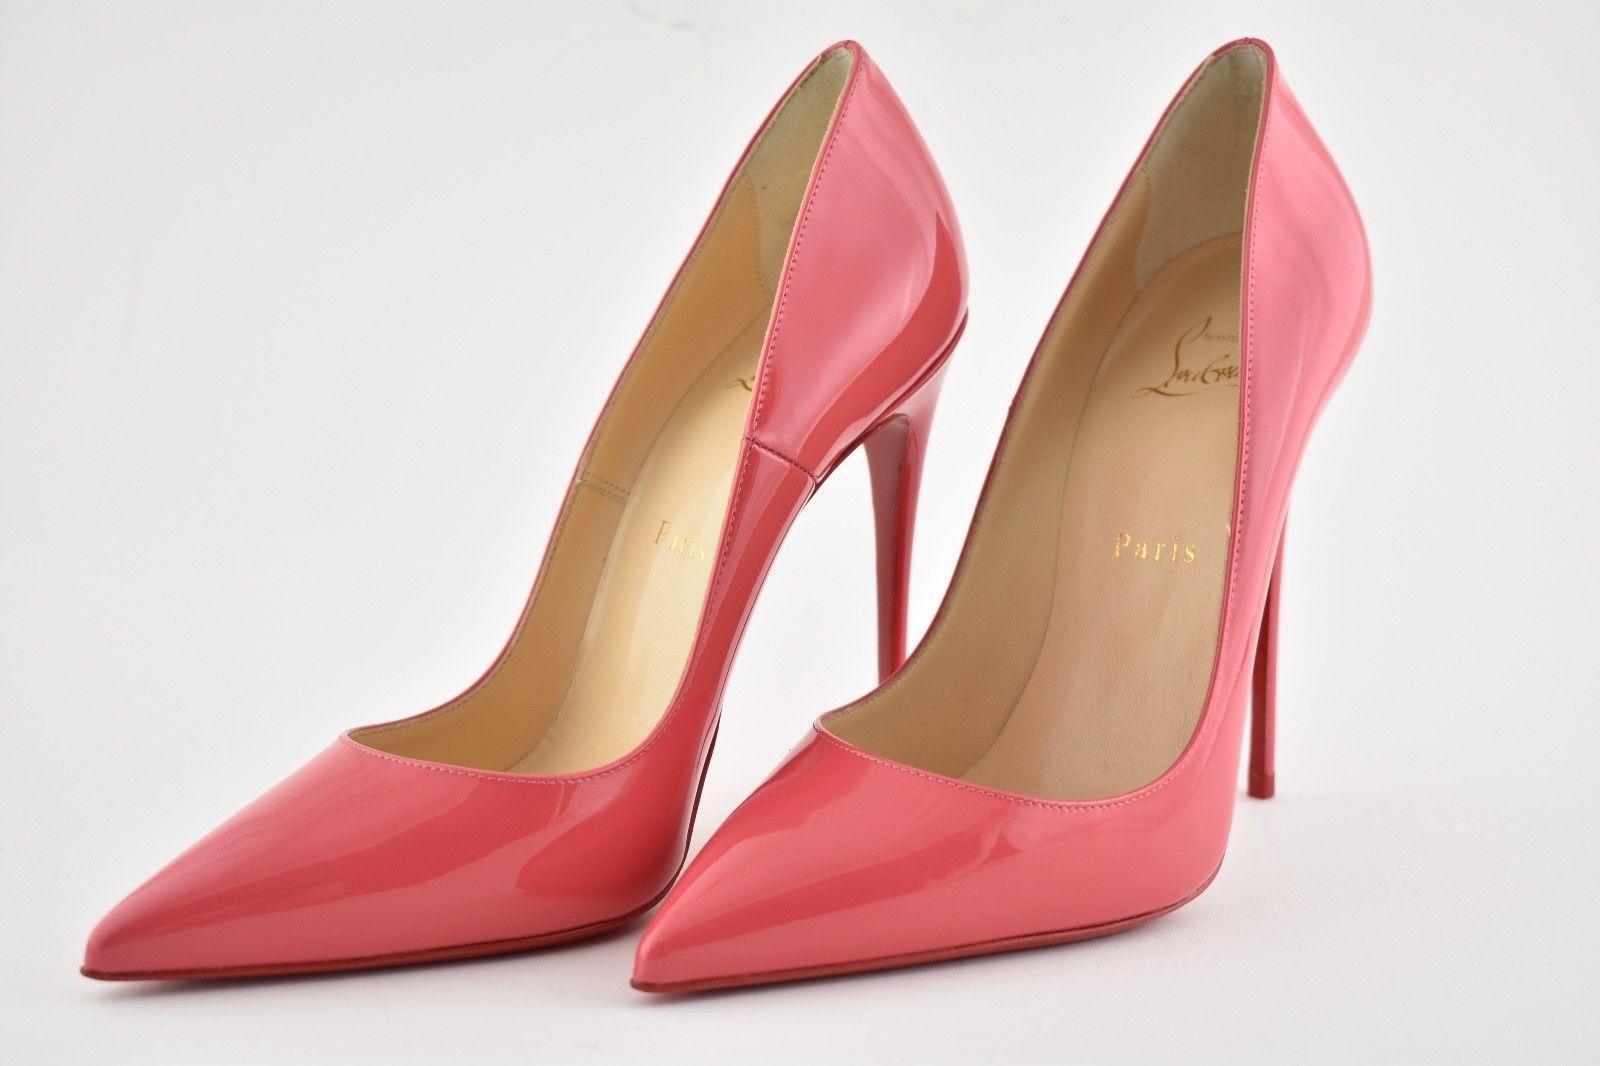 99afe0ffe9a ... Gentleman Lady:Christian Louboutin Pink So So So Kate 120 Begonia  Patent Leather Heel ...